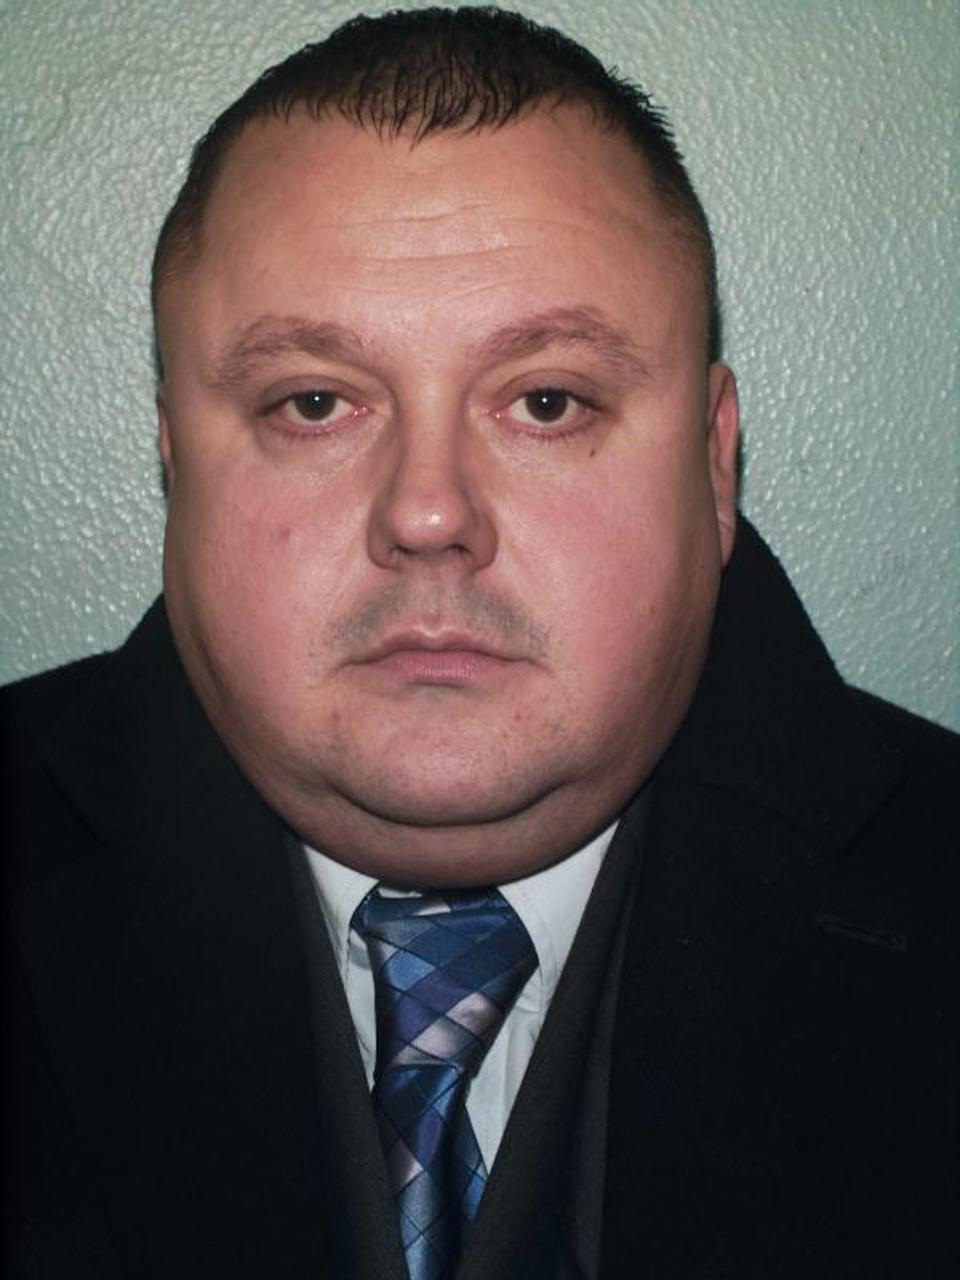 UNSPECIFIED, UNDATED - In this undated handout photo from the Metropolitan Police, made available February 26, 2008, convicted murderer Levi Bellfield is seen. Levi Bellfield, convicted of two murders and one attempted murder, was February 26, 2008 sentenced to a